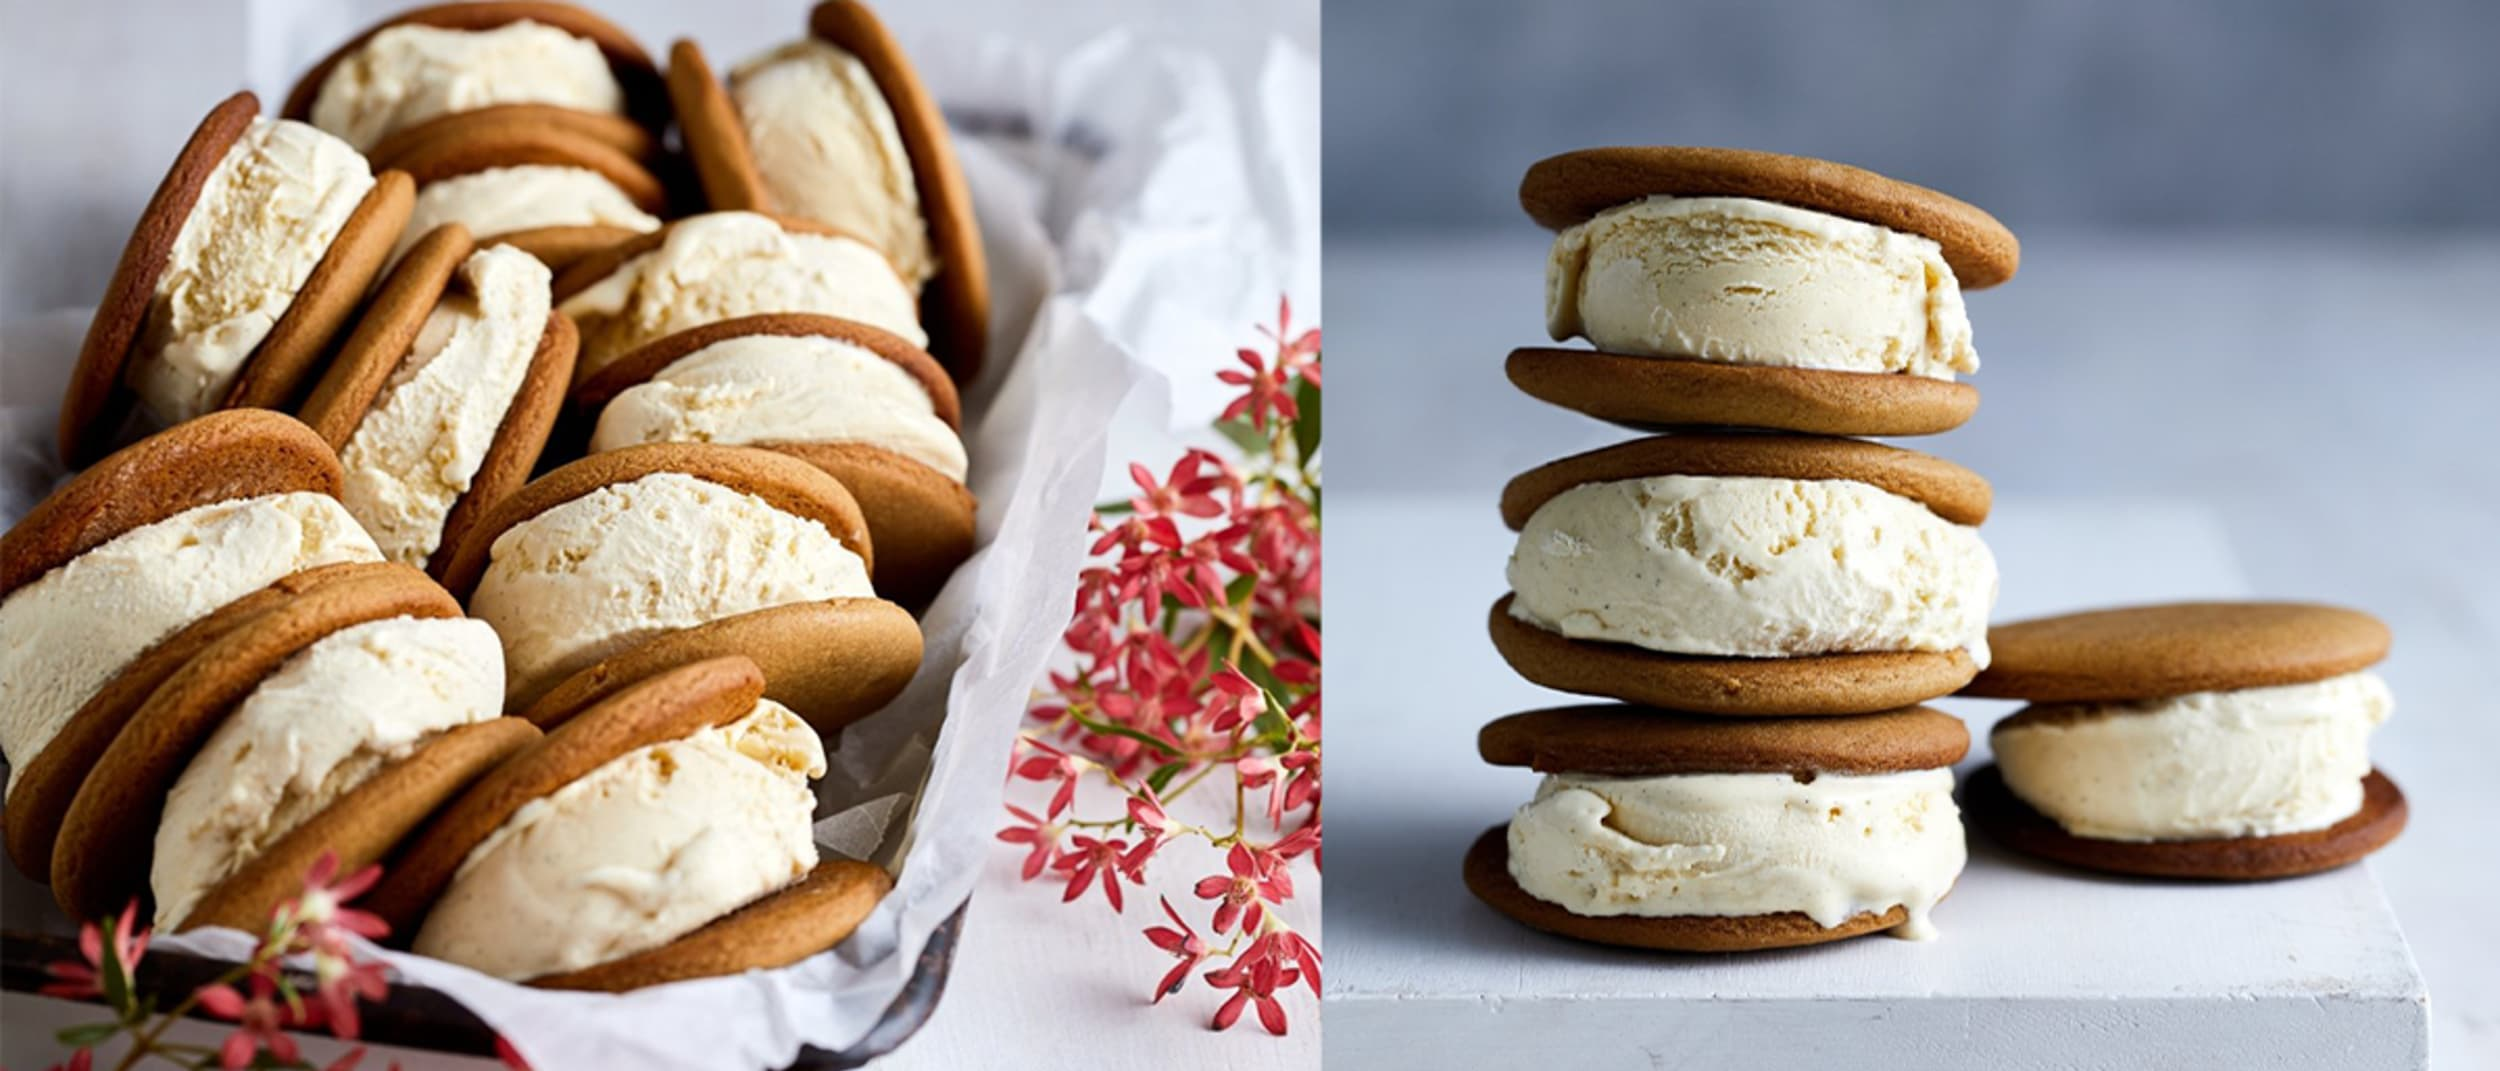 Harris Farm Markets: Charlotte Ree's Ice Cream Sandwiches